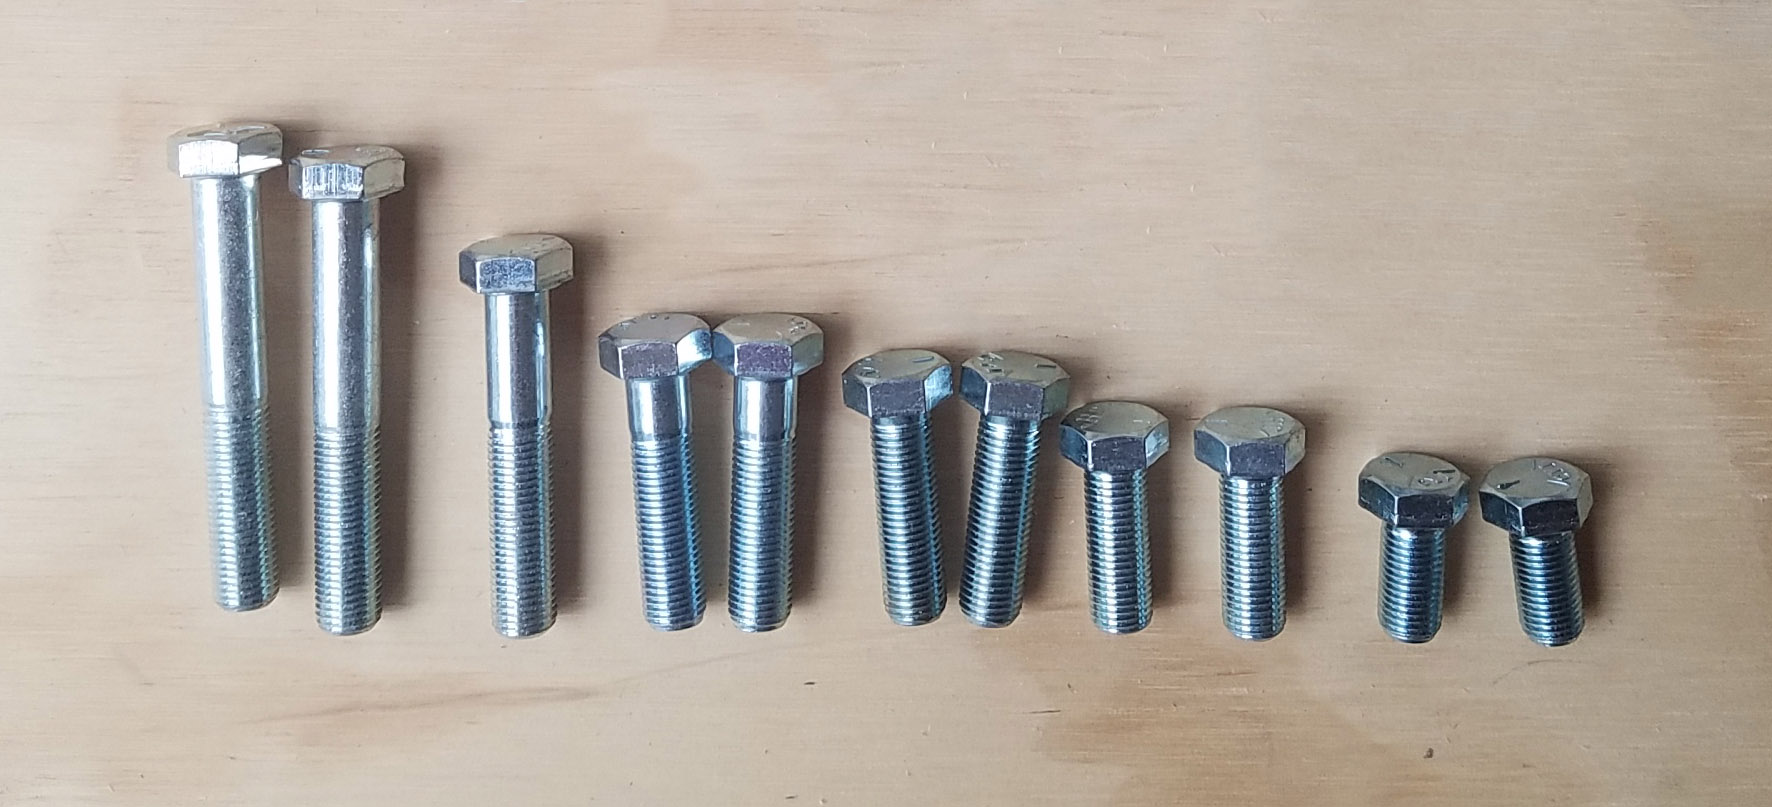 """Tip: If you're going to make a lot of custom brackets like we did, buy at least two of every length of 3/8"""" fine-threaded bolt you can find (also known as 3/8 - 24), and return what you don't use when you're done. We were surprised by how many times we needed a slightly longer or shorter bolt."""